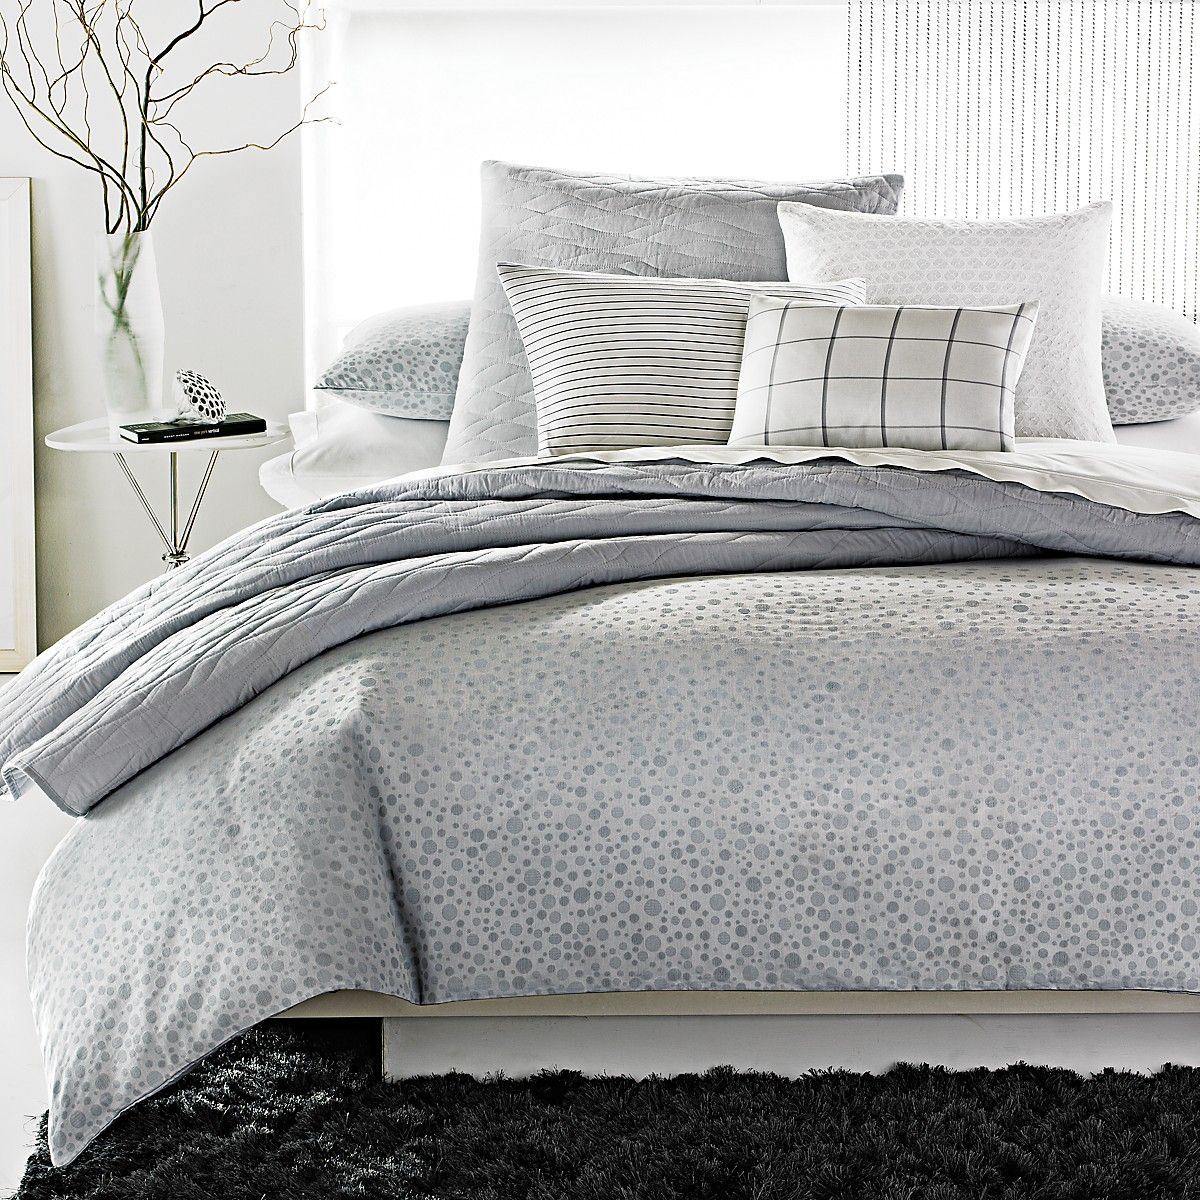 calvin klein home studio collection mykonos bedding. Black Bedroom Furniture Sets. Home Design Ideas